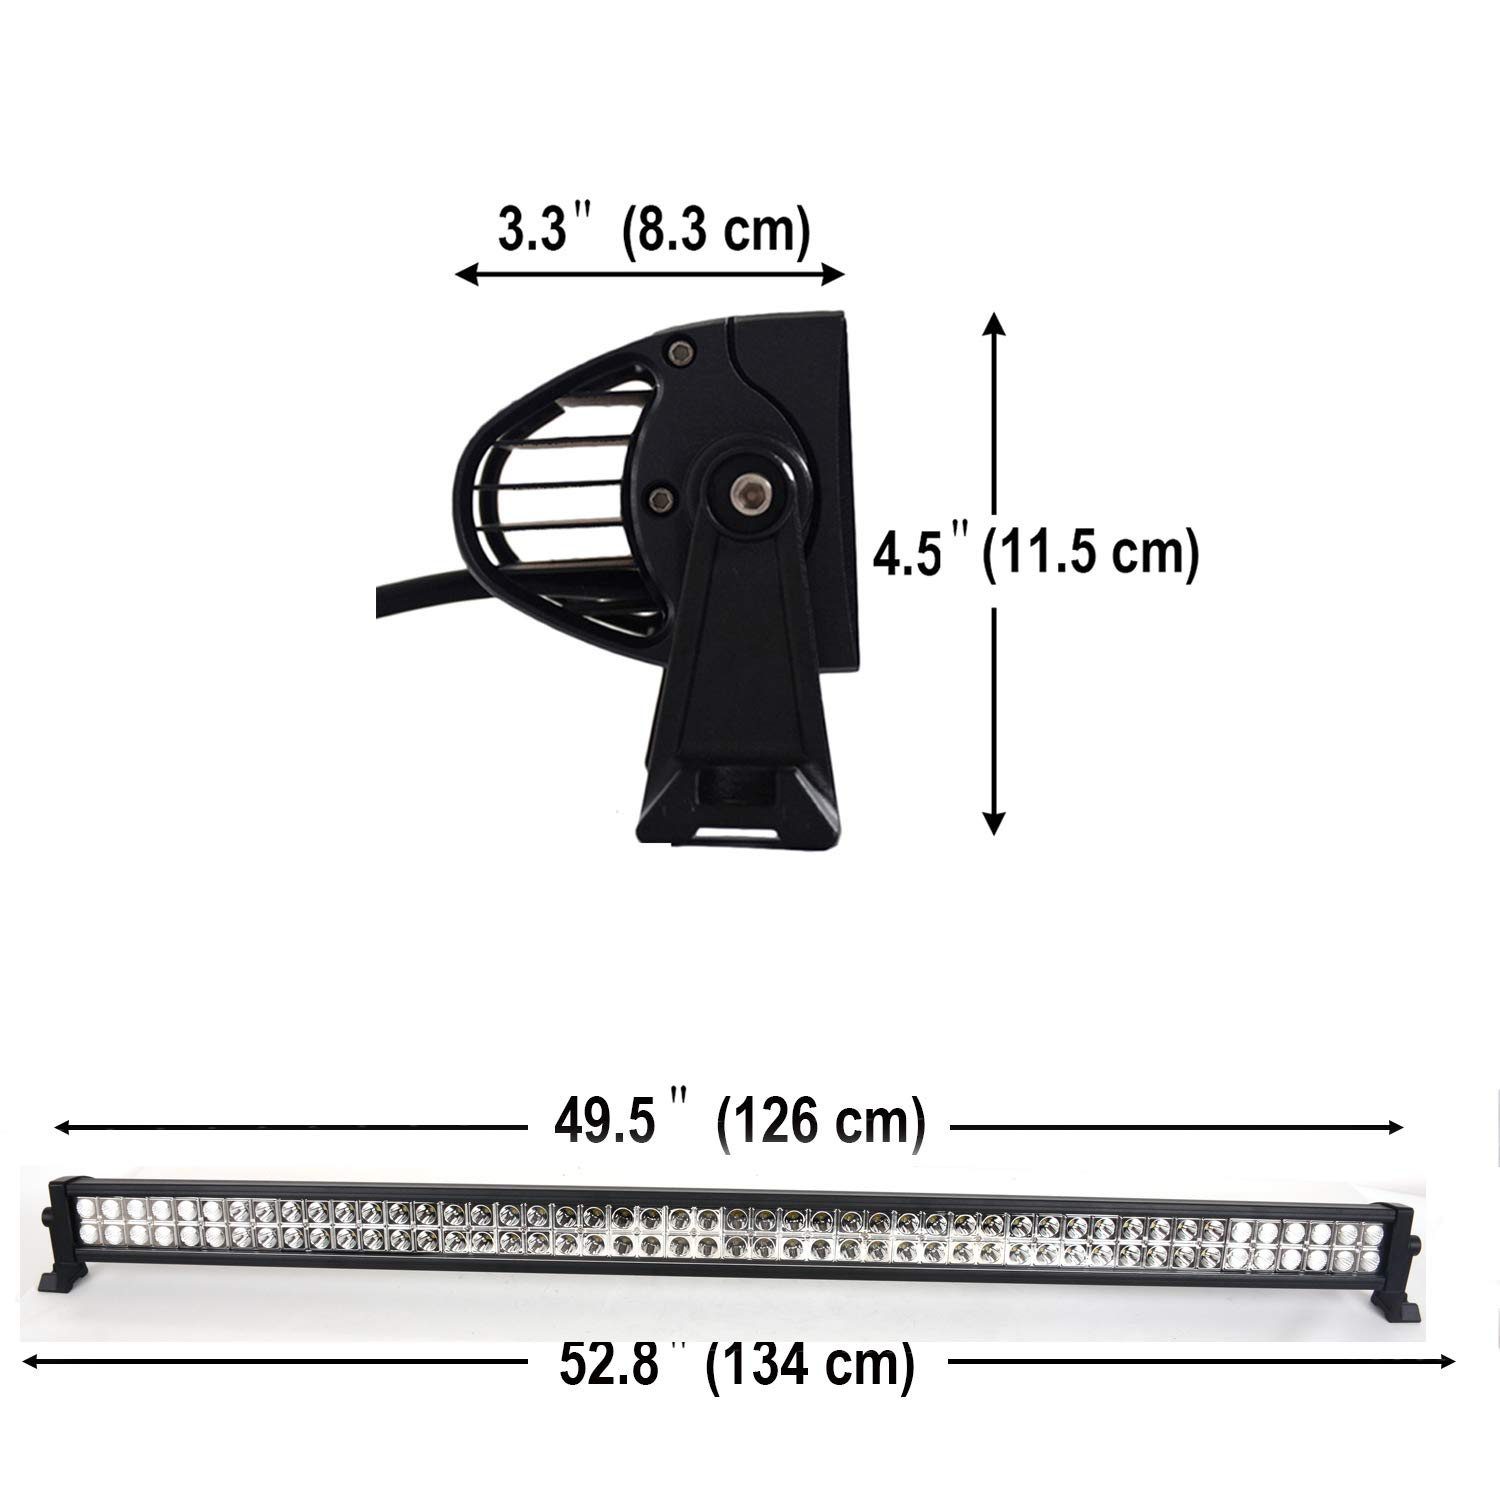 China CH008 32 Inch LED Light Bar180W FSYF LED Work Lights Combo LED Driving Lights Jeep Off Road Lights Boat Lighting 2 Year Waranty 6000-6200k Waterproof For Suv Atv 4wd Truck Heavy Duty Vehicle 32 inch